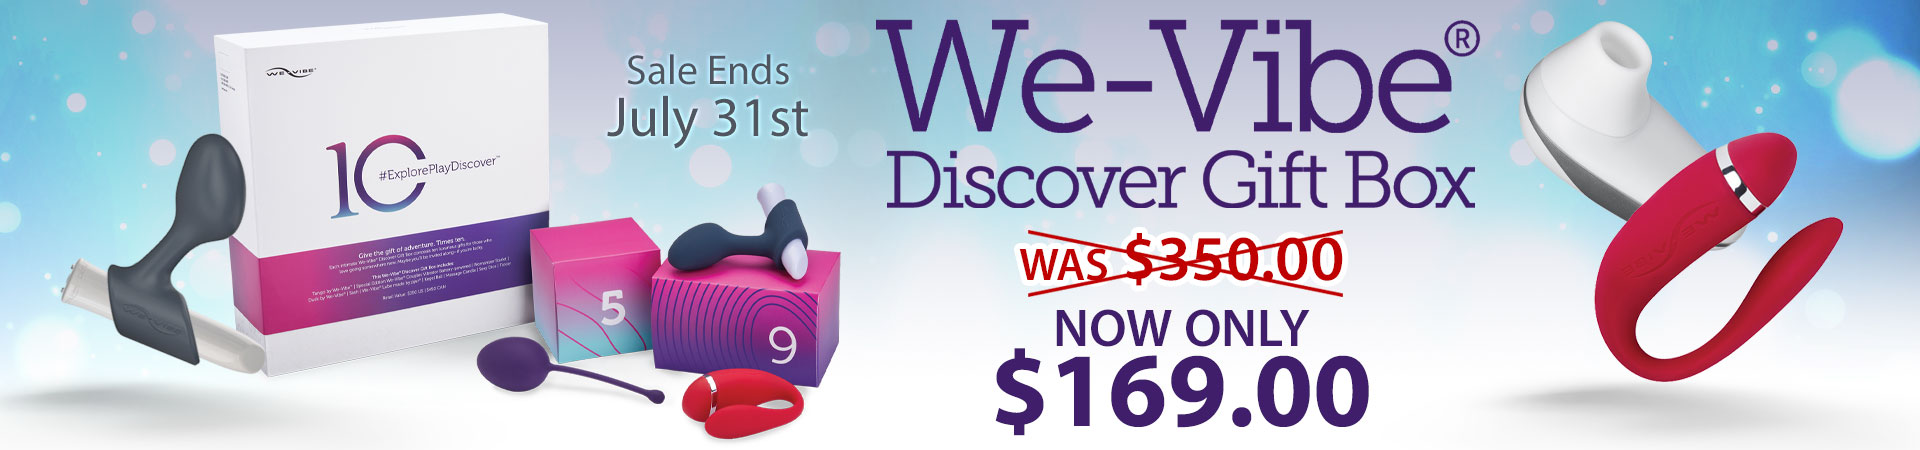 We-Vibe Gift Box - Now Only $169.00 - Ends July 31st